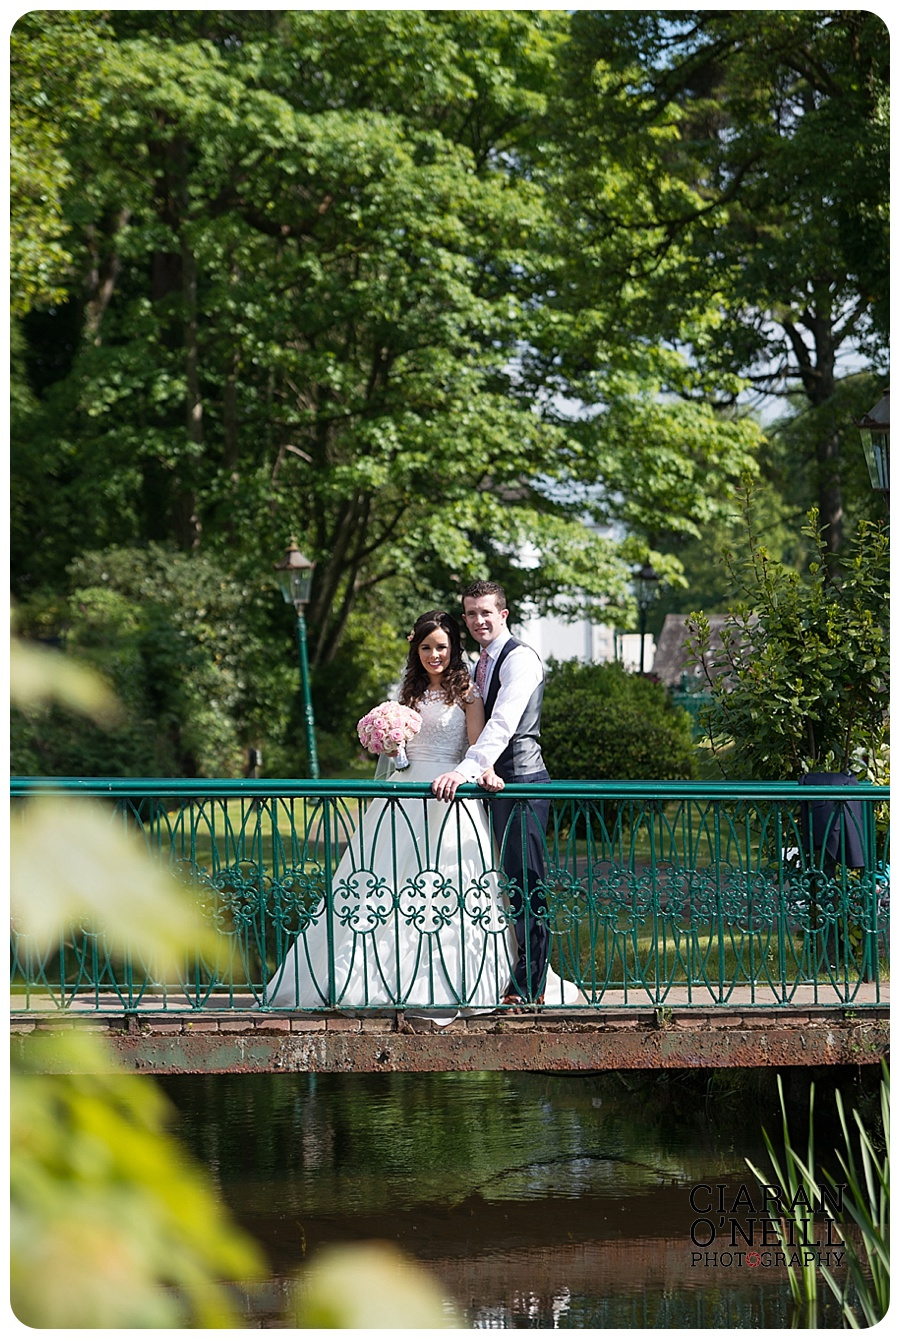 Laura & Liam's wedding at Galgorm Resort & Spa by Ciaran O'Neill Photography 23